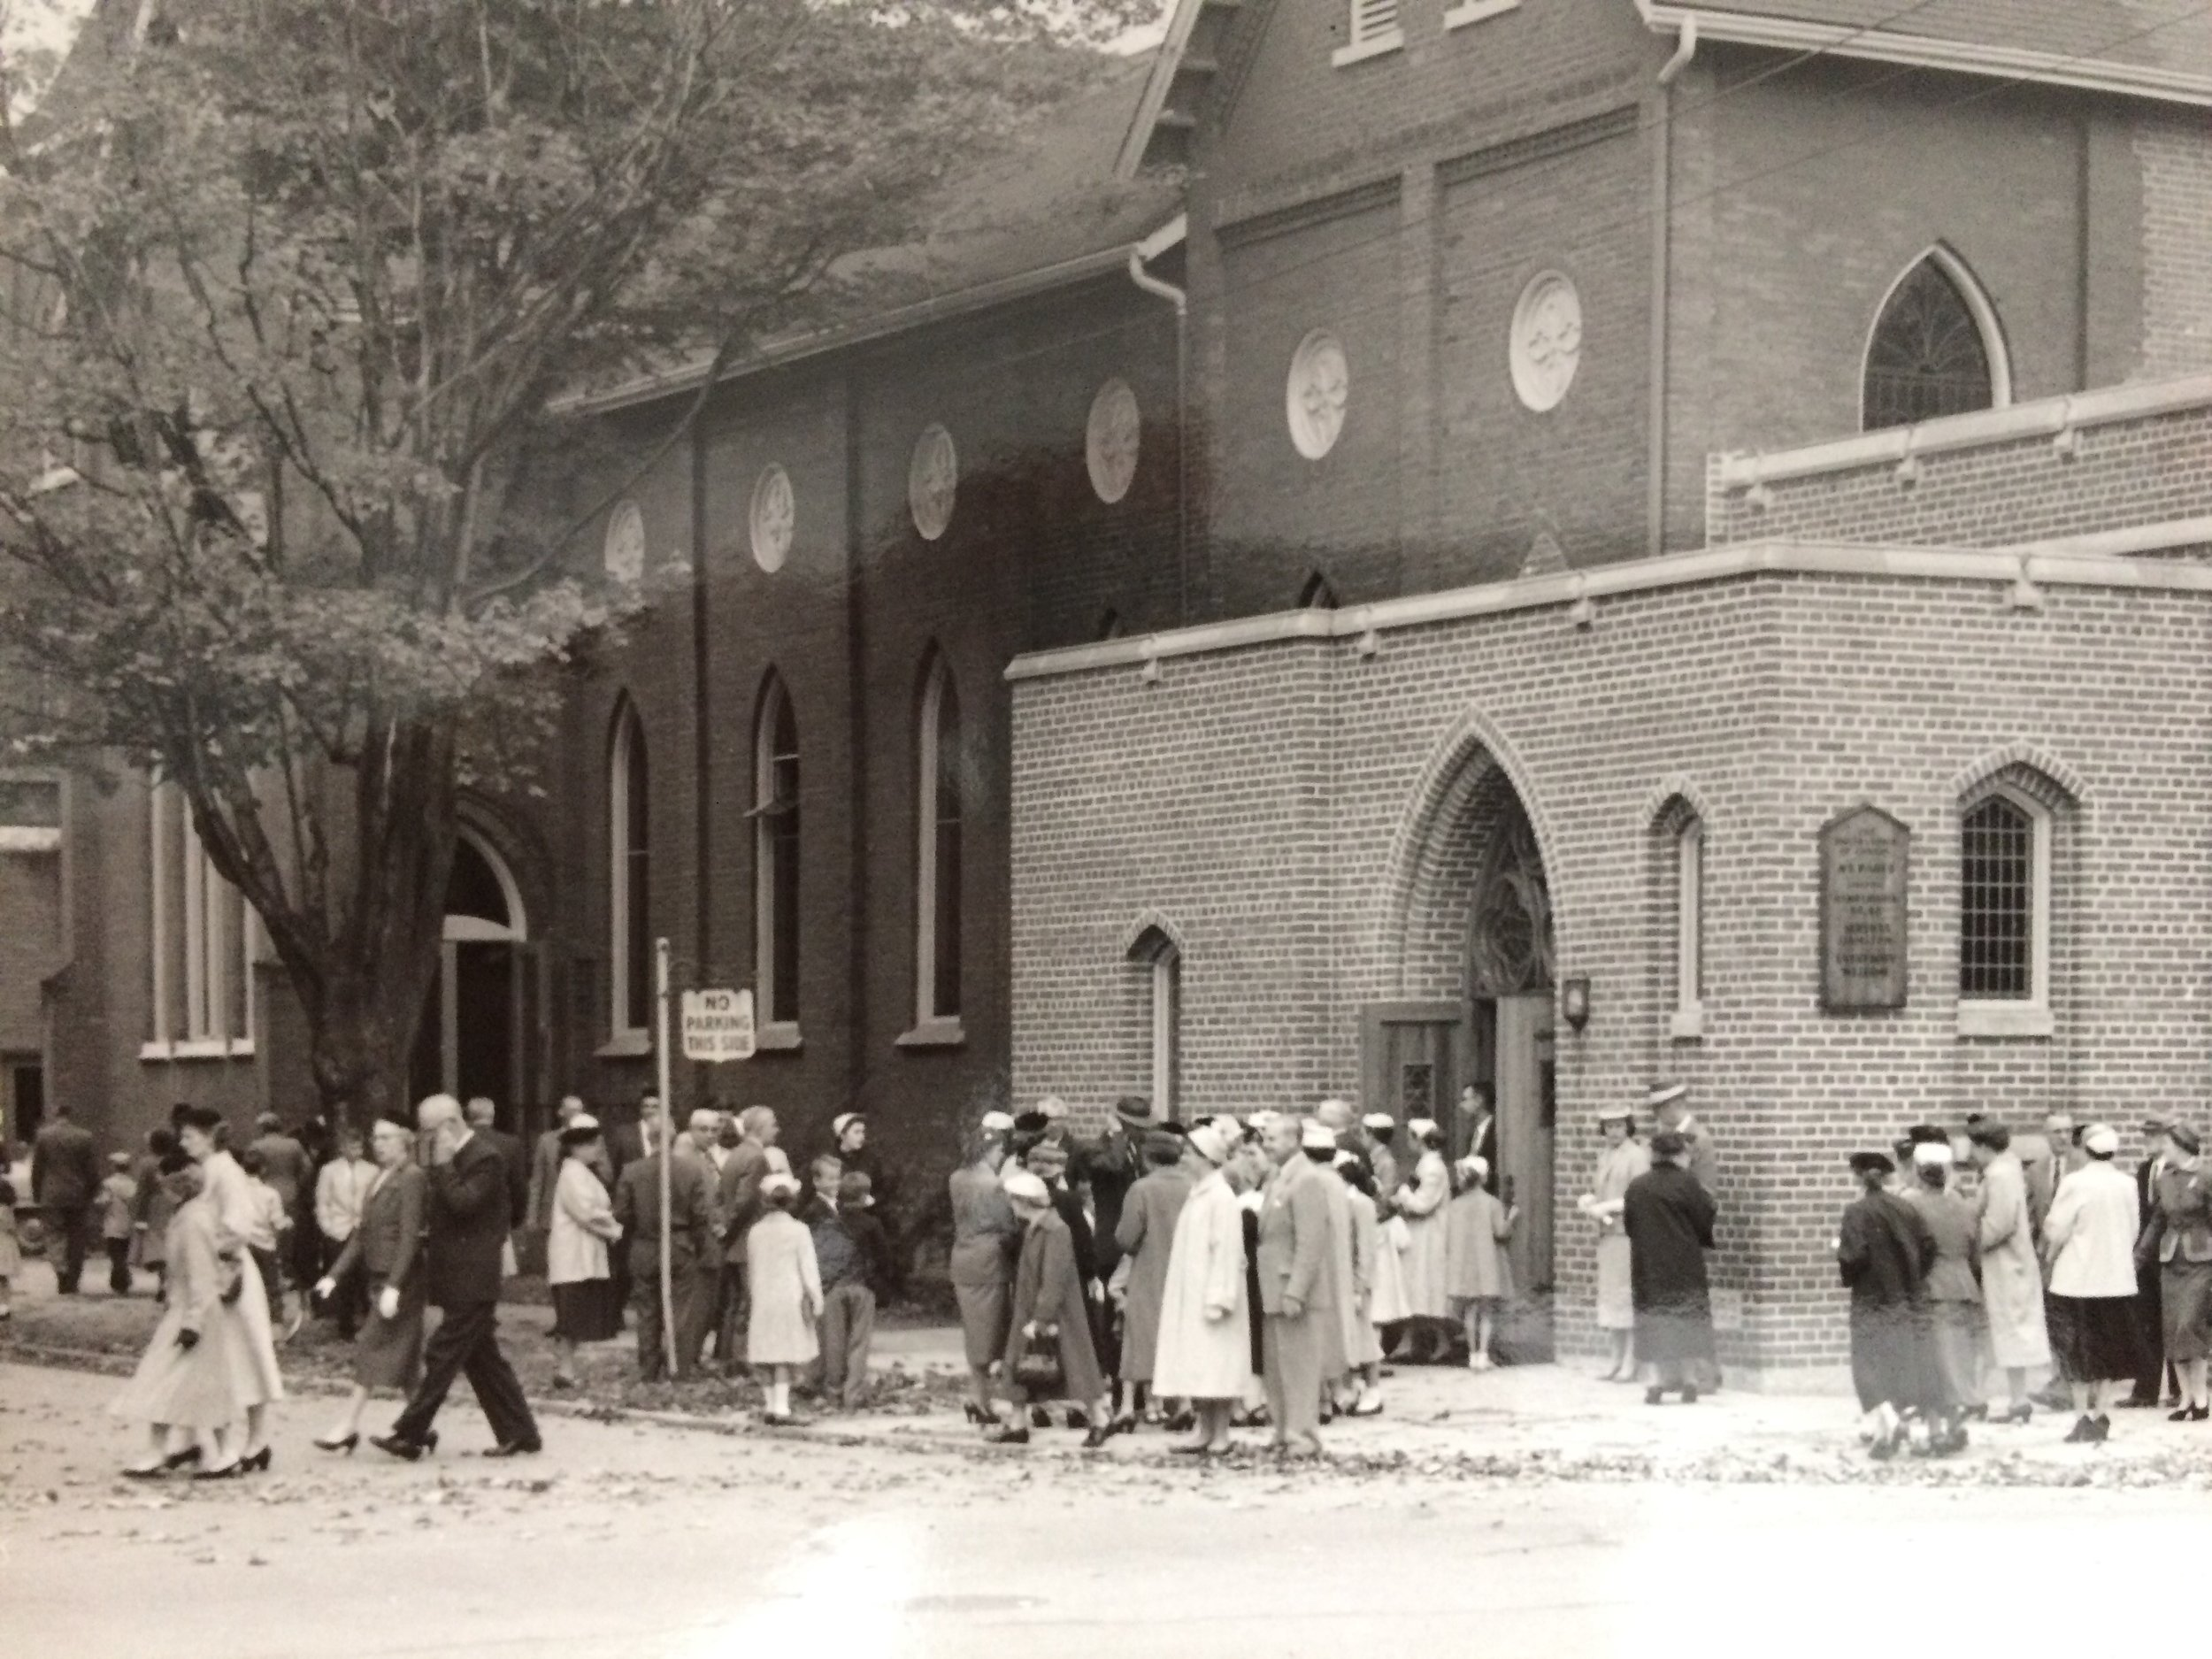 St. Paul's United Church in the 1950's -- archival photo thanks to D. Hunter